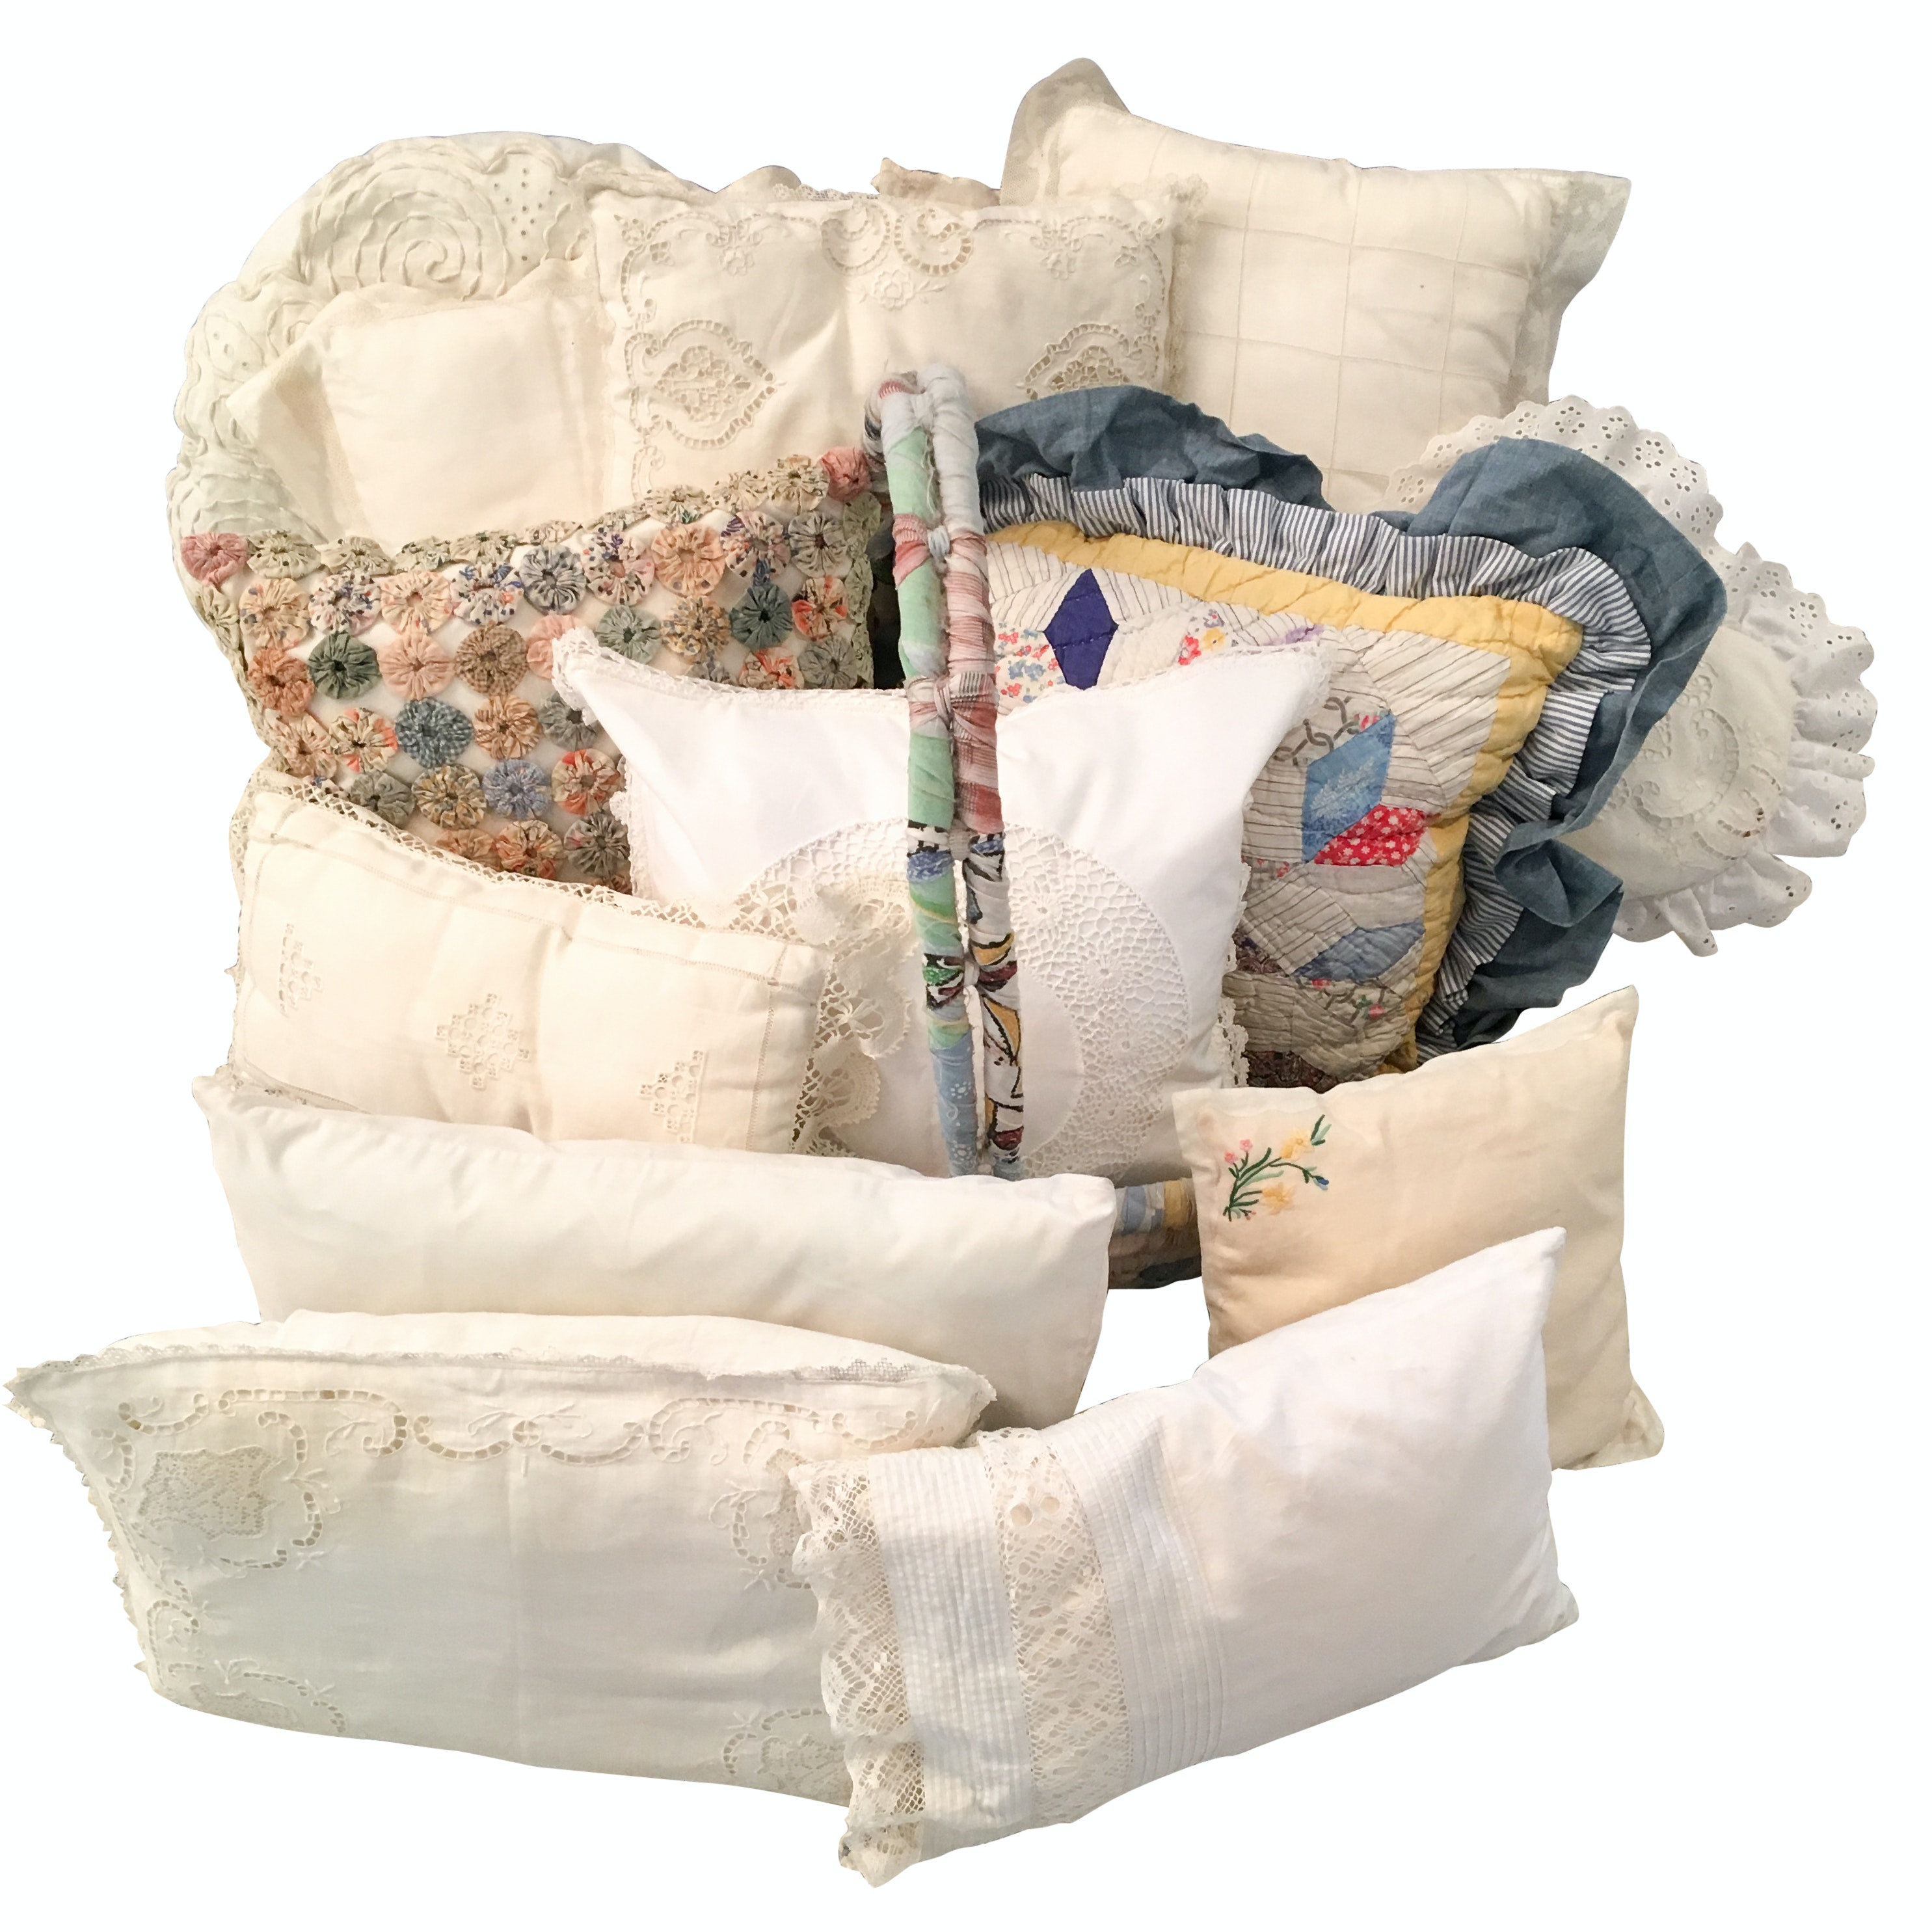 Vintage Linen Throw Pillows and Woven Fabric Basket